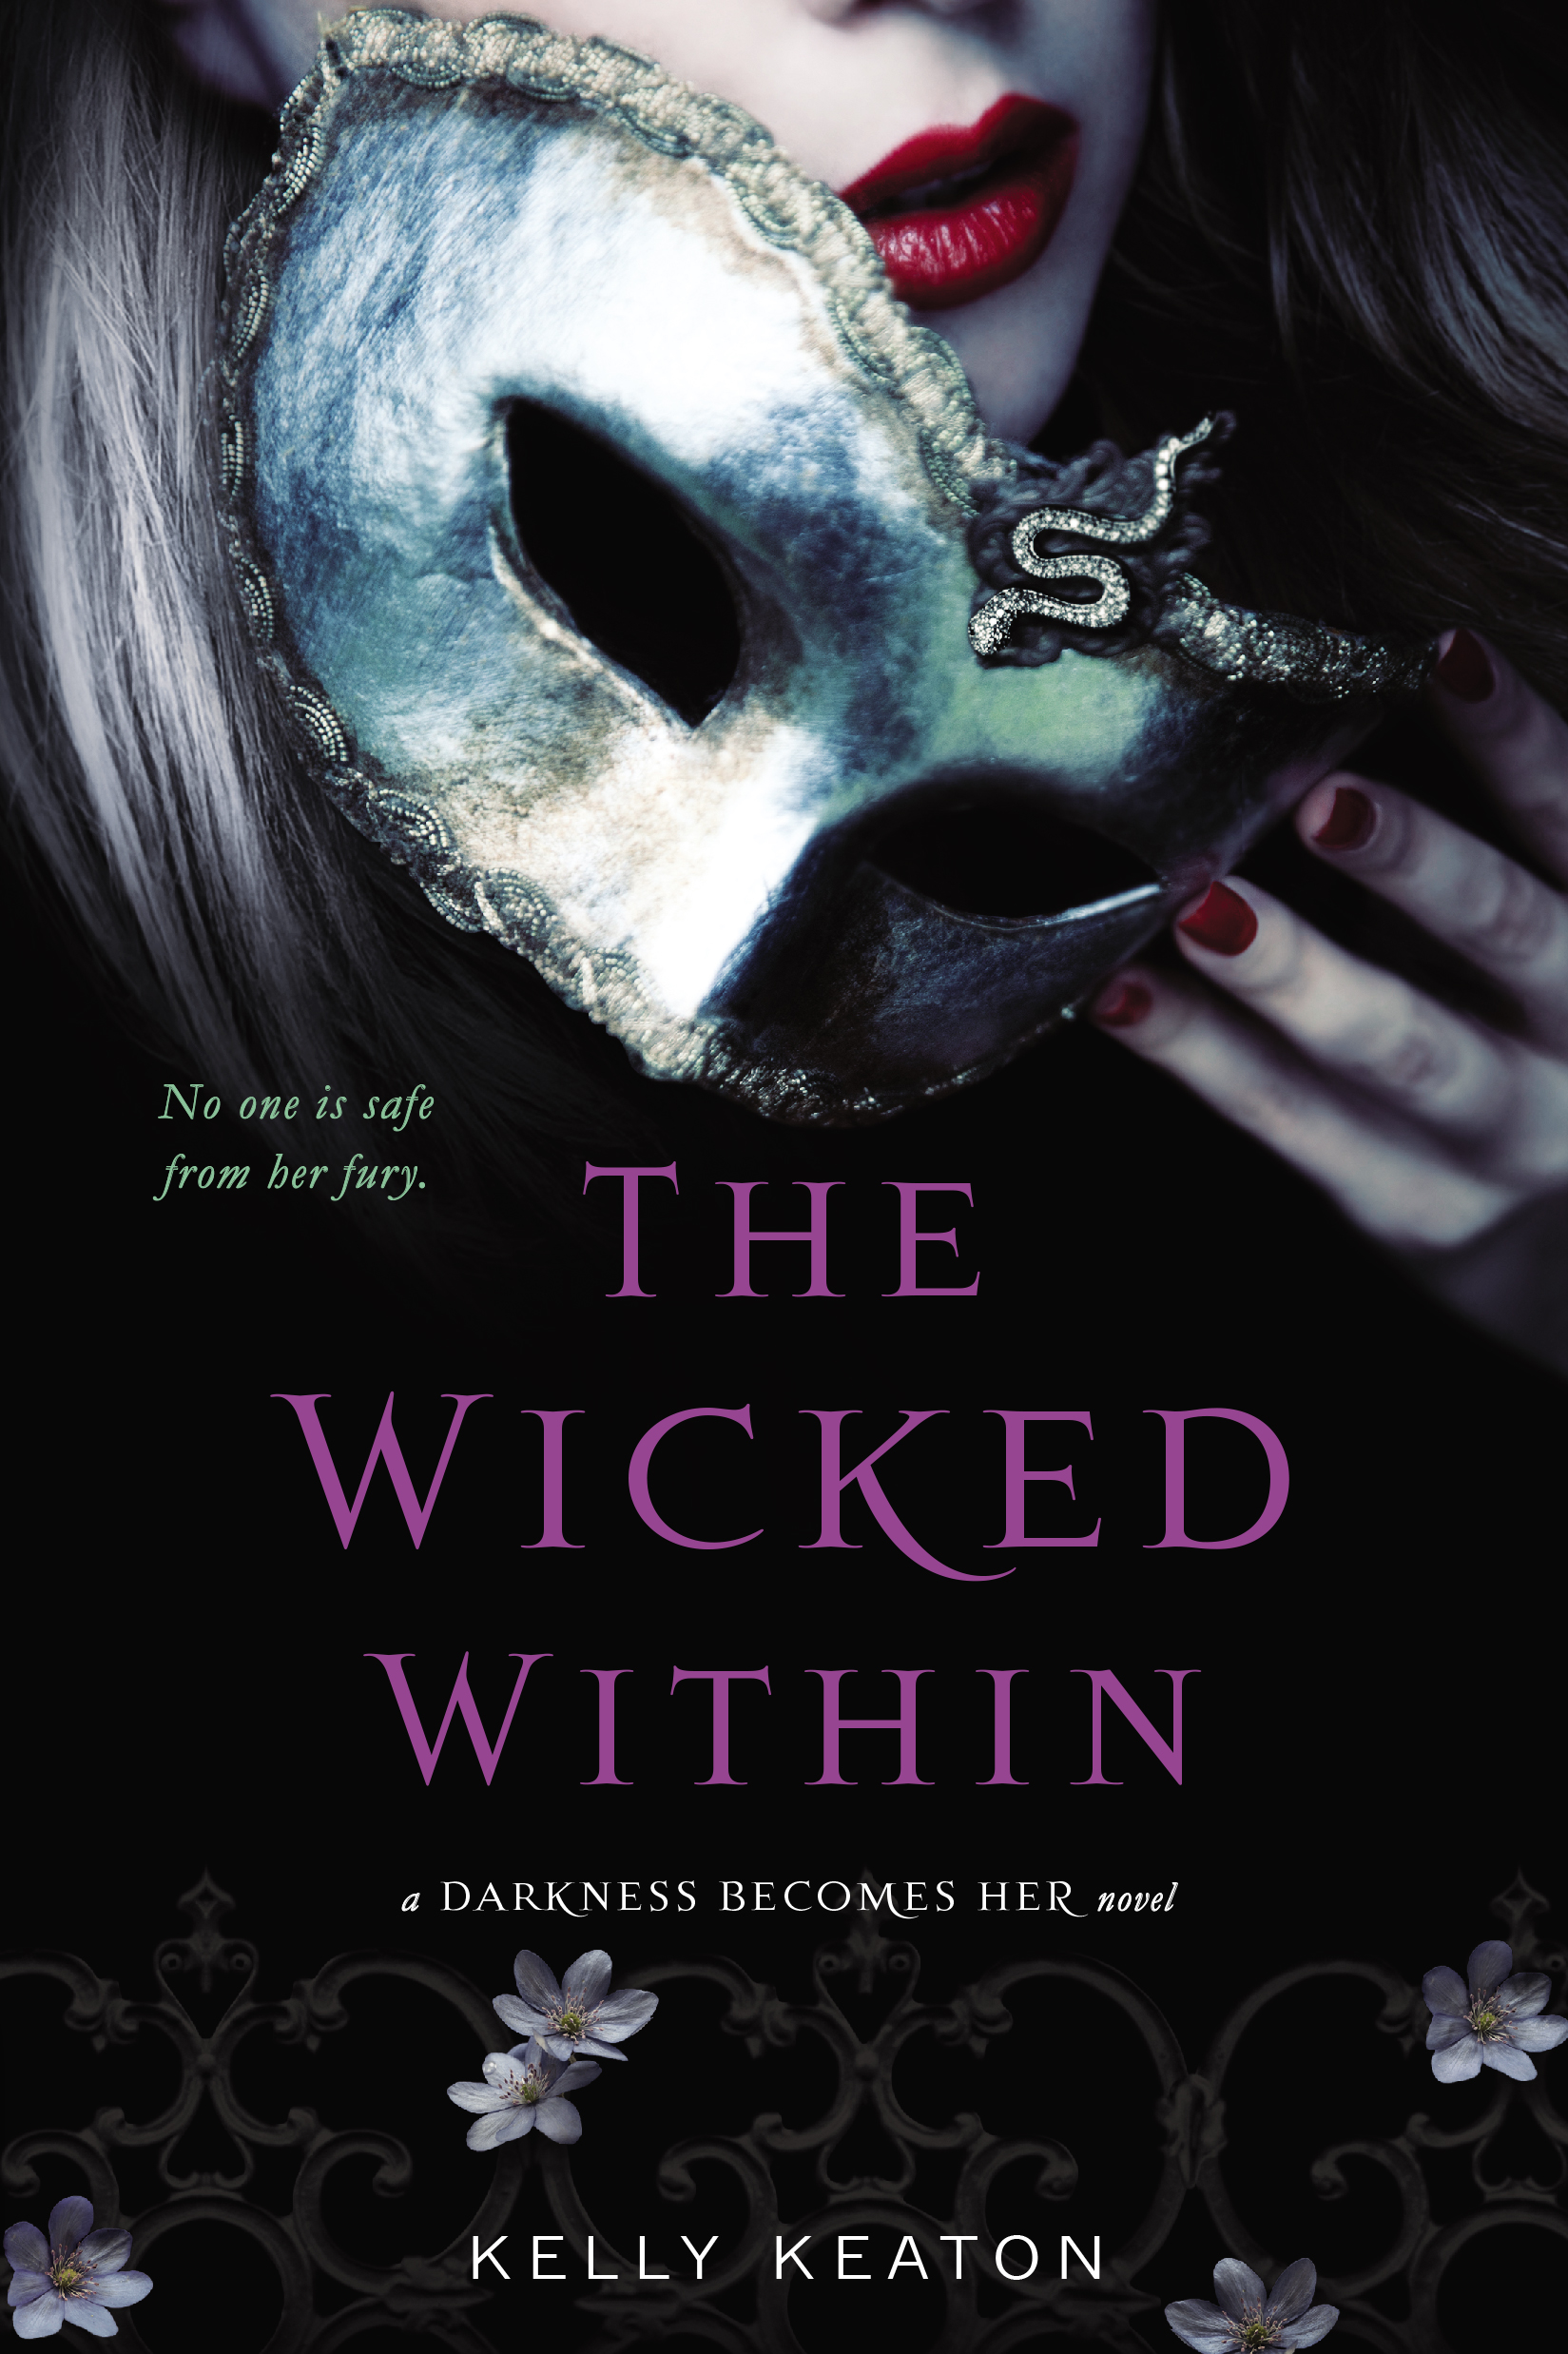 Wicked within 9781442493162 hr